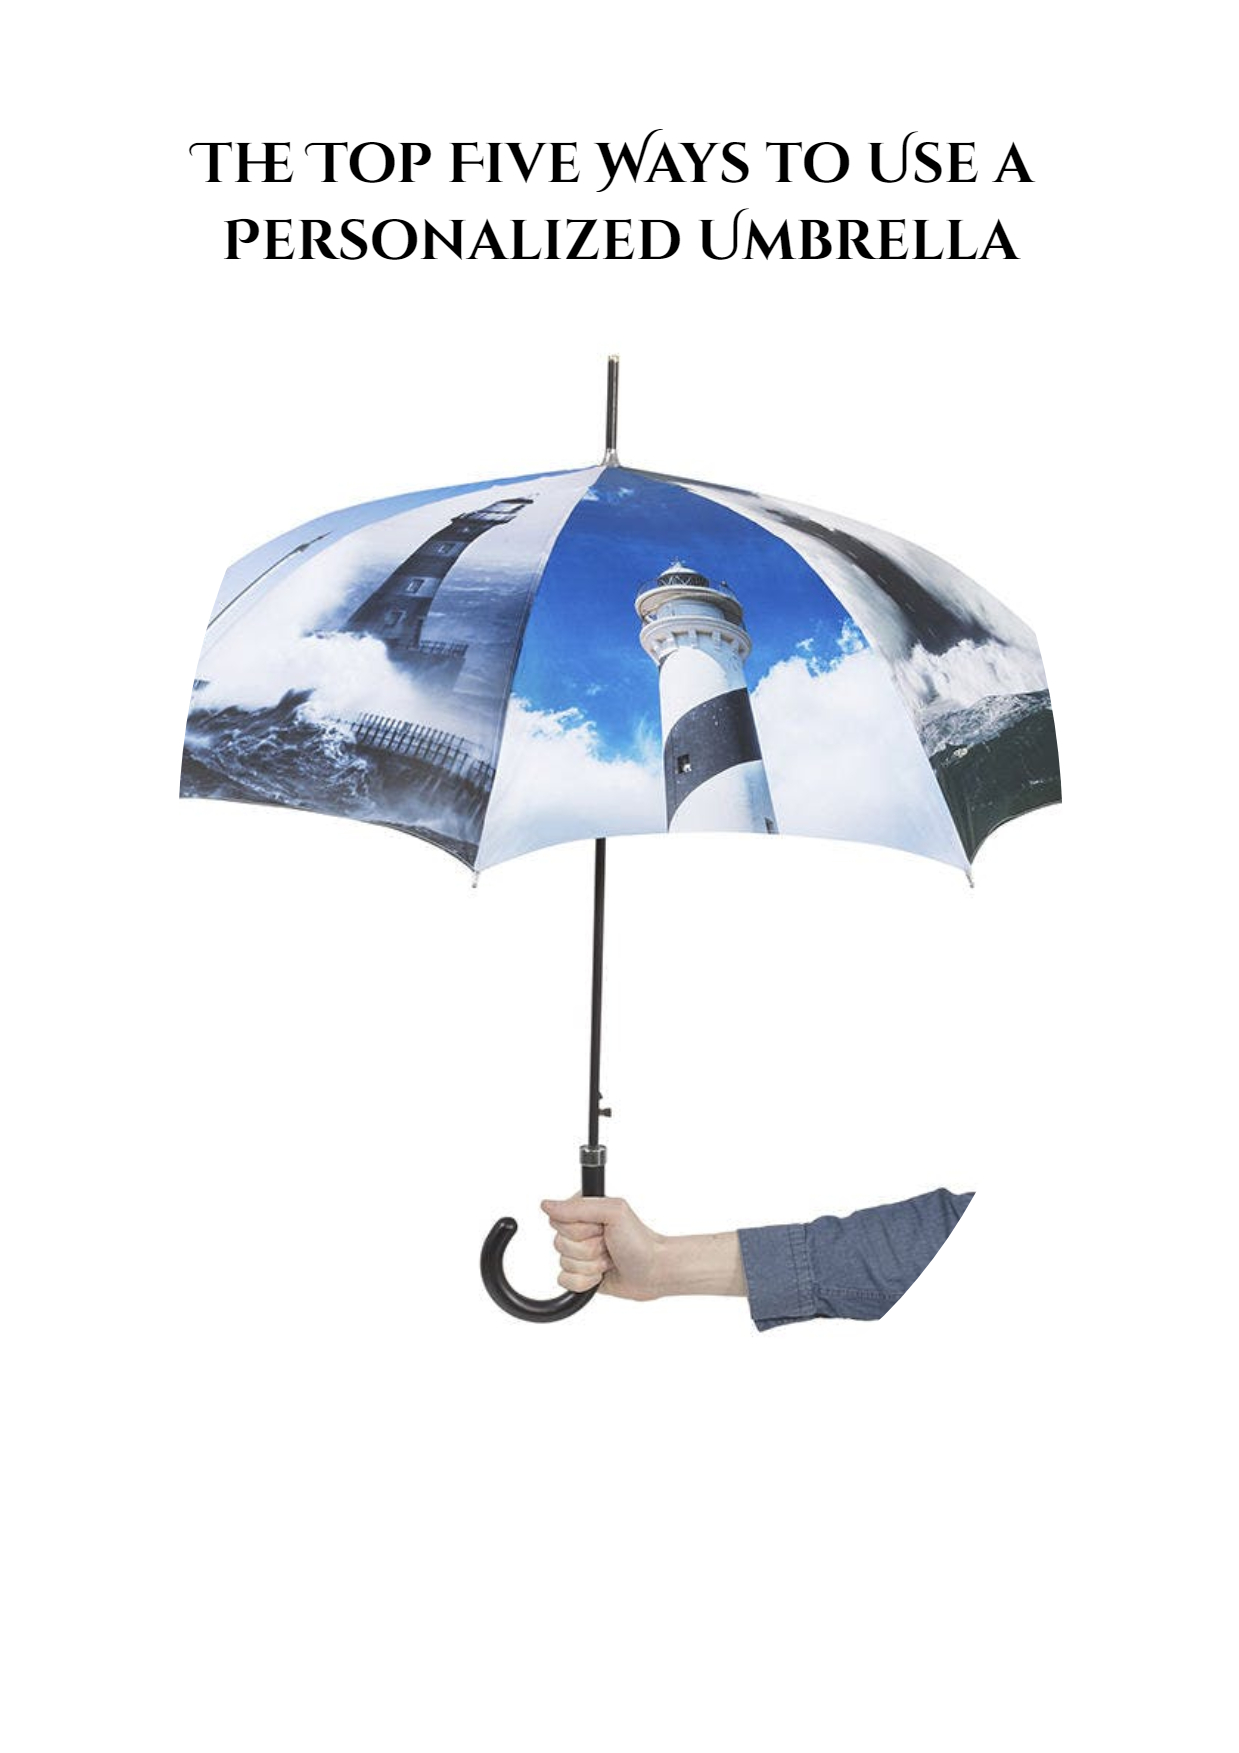 The Top Five Ways to Use a Personalized Umbrella